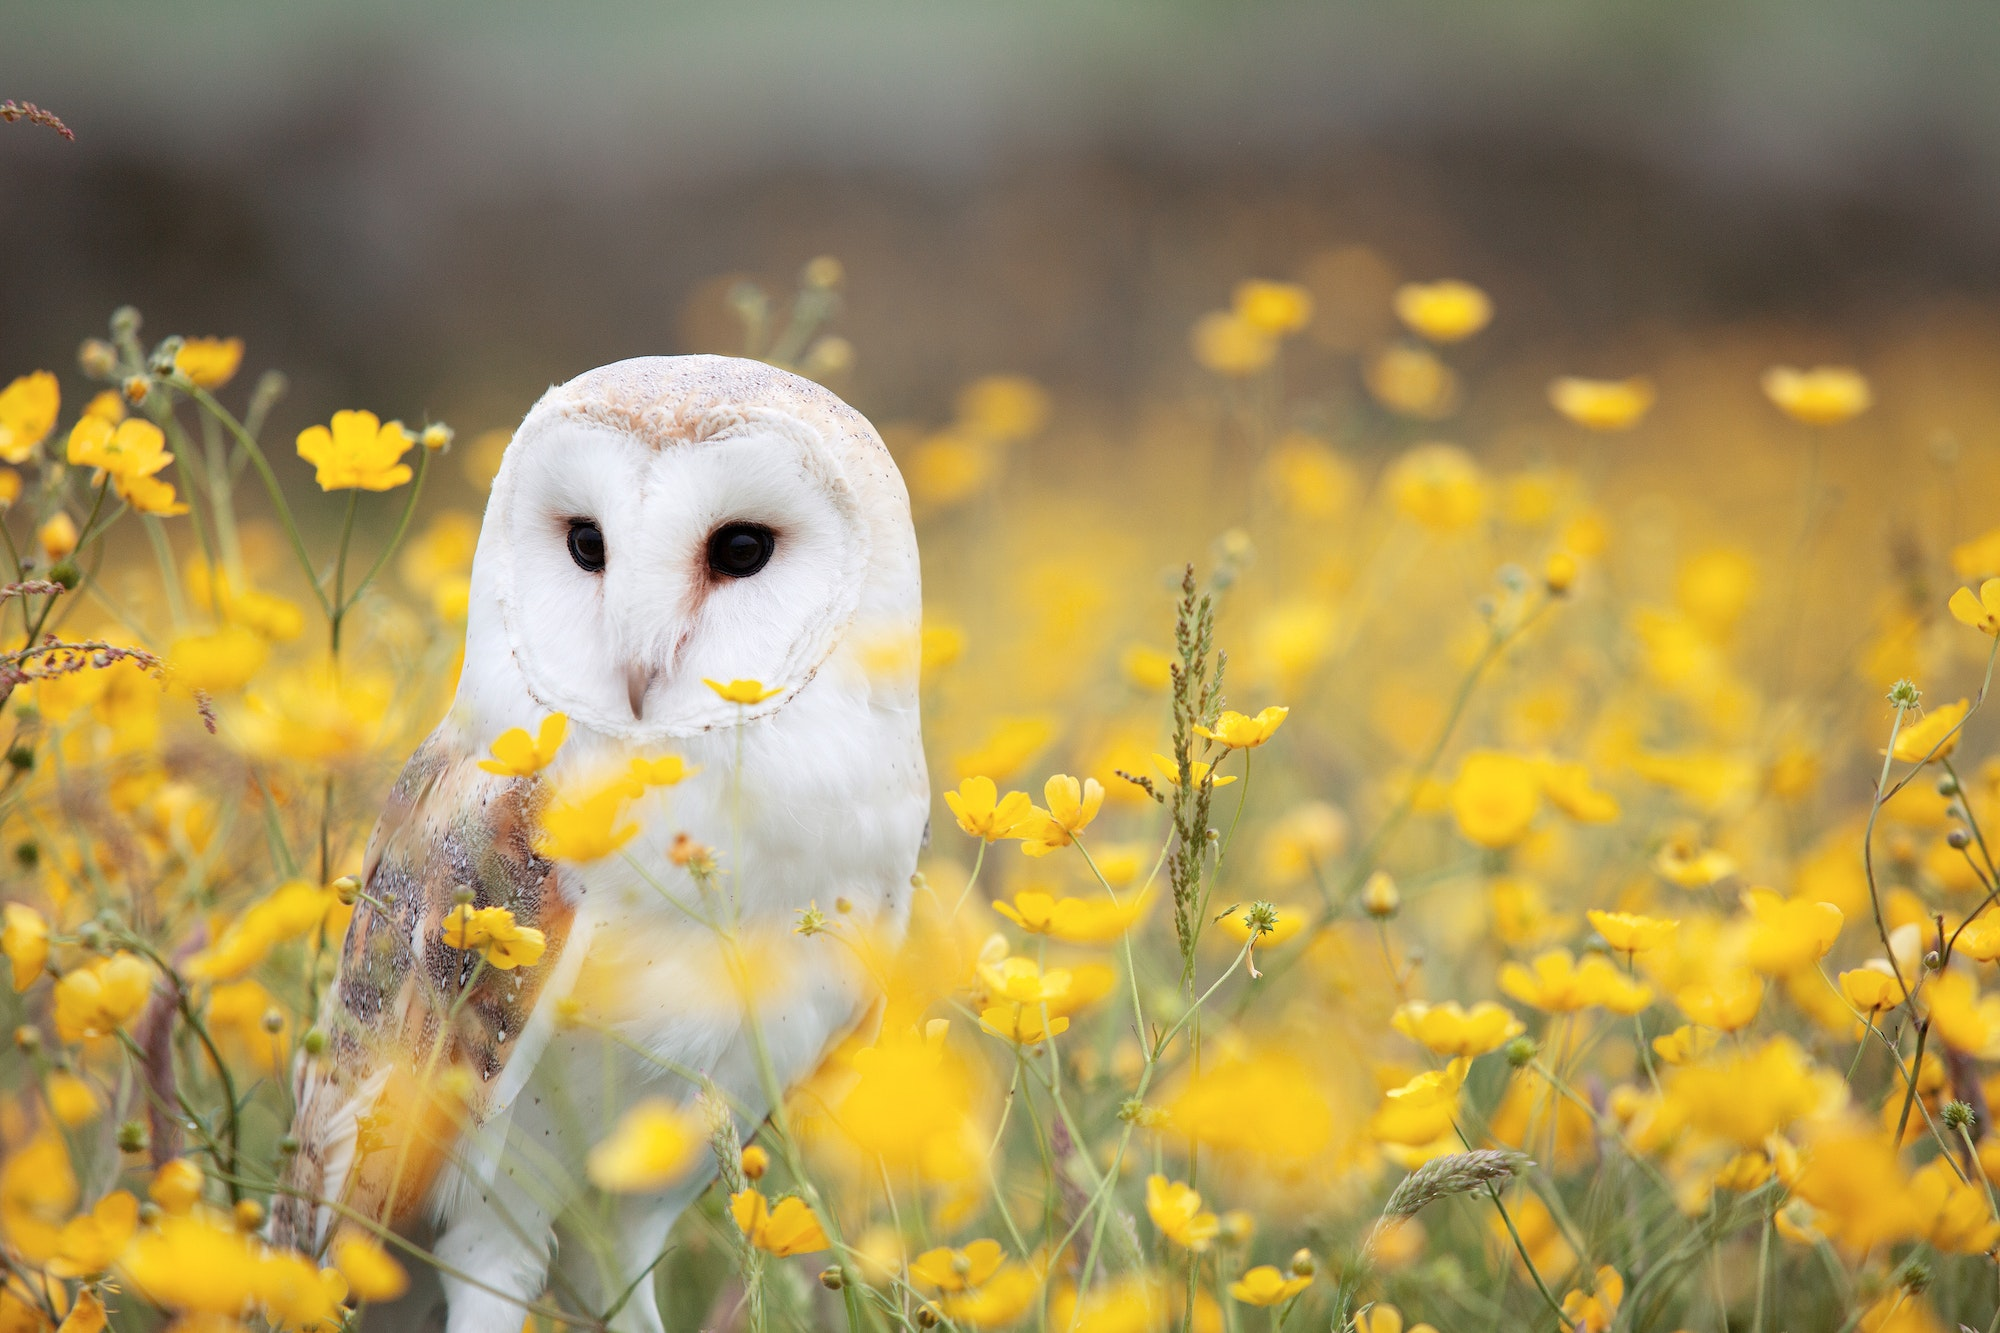 May contain: barn owl in a field of yellow flowers